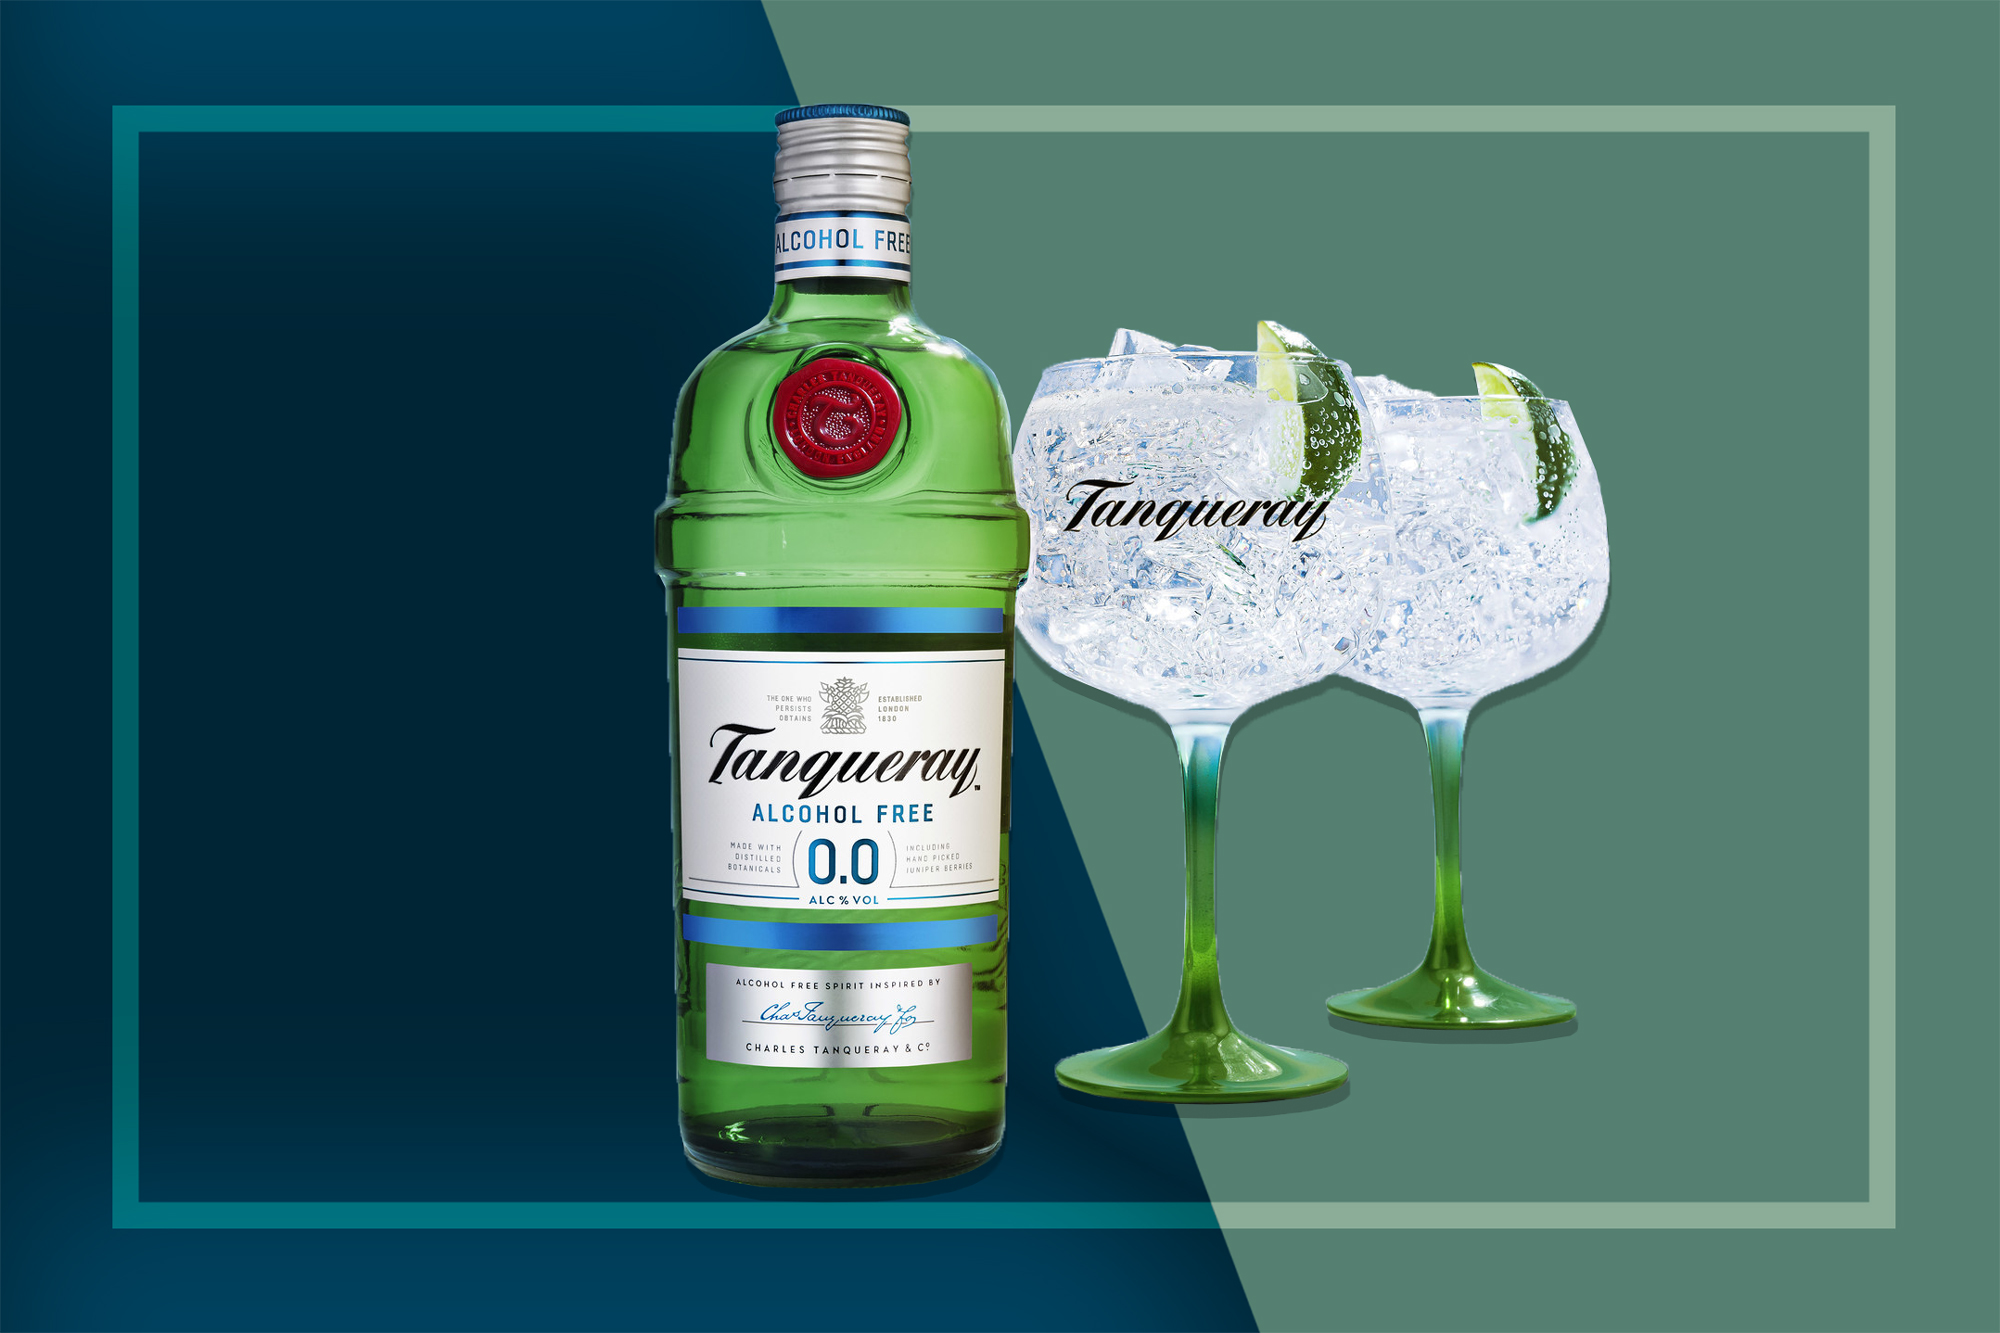 Tanqueray 0.0 Alcohol-Free Gin